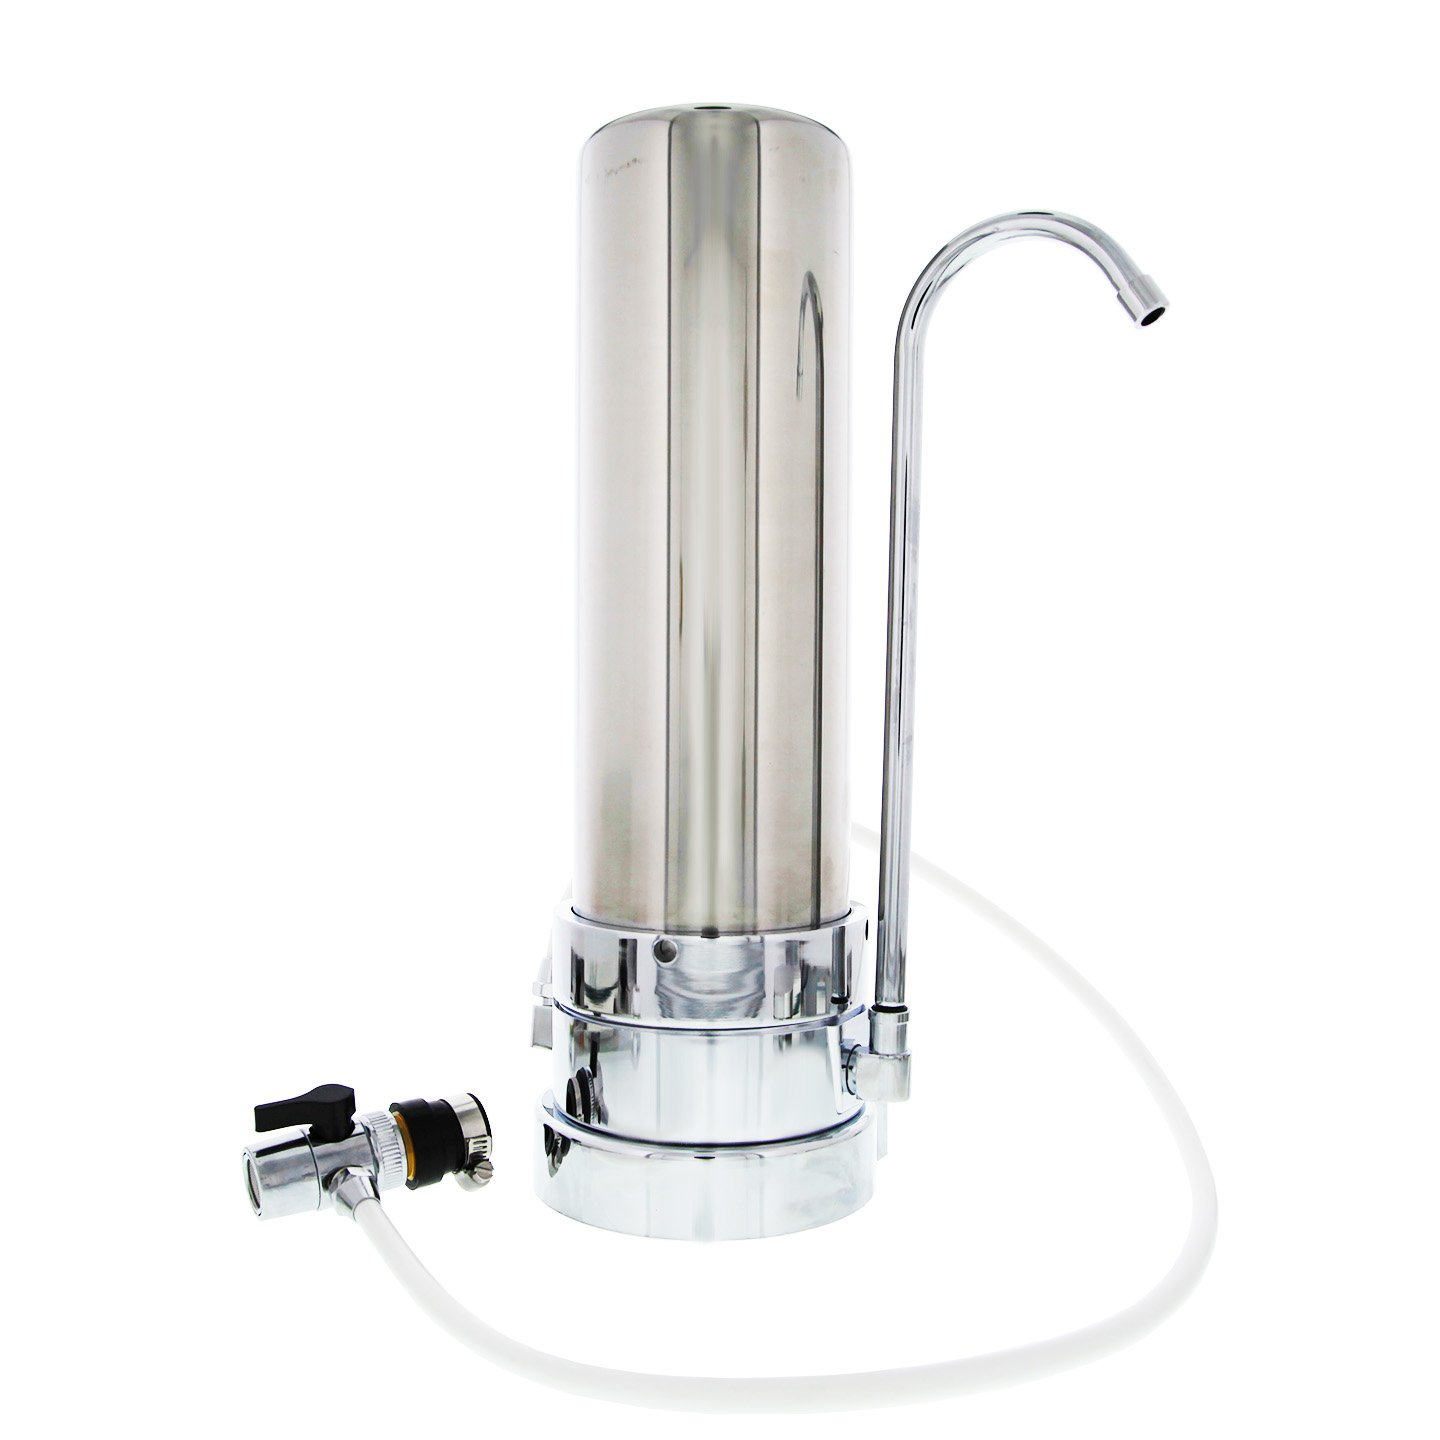 Tier1 Stainless Steel Countertop Drinking Water System